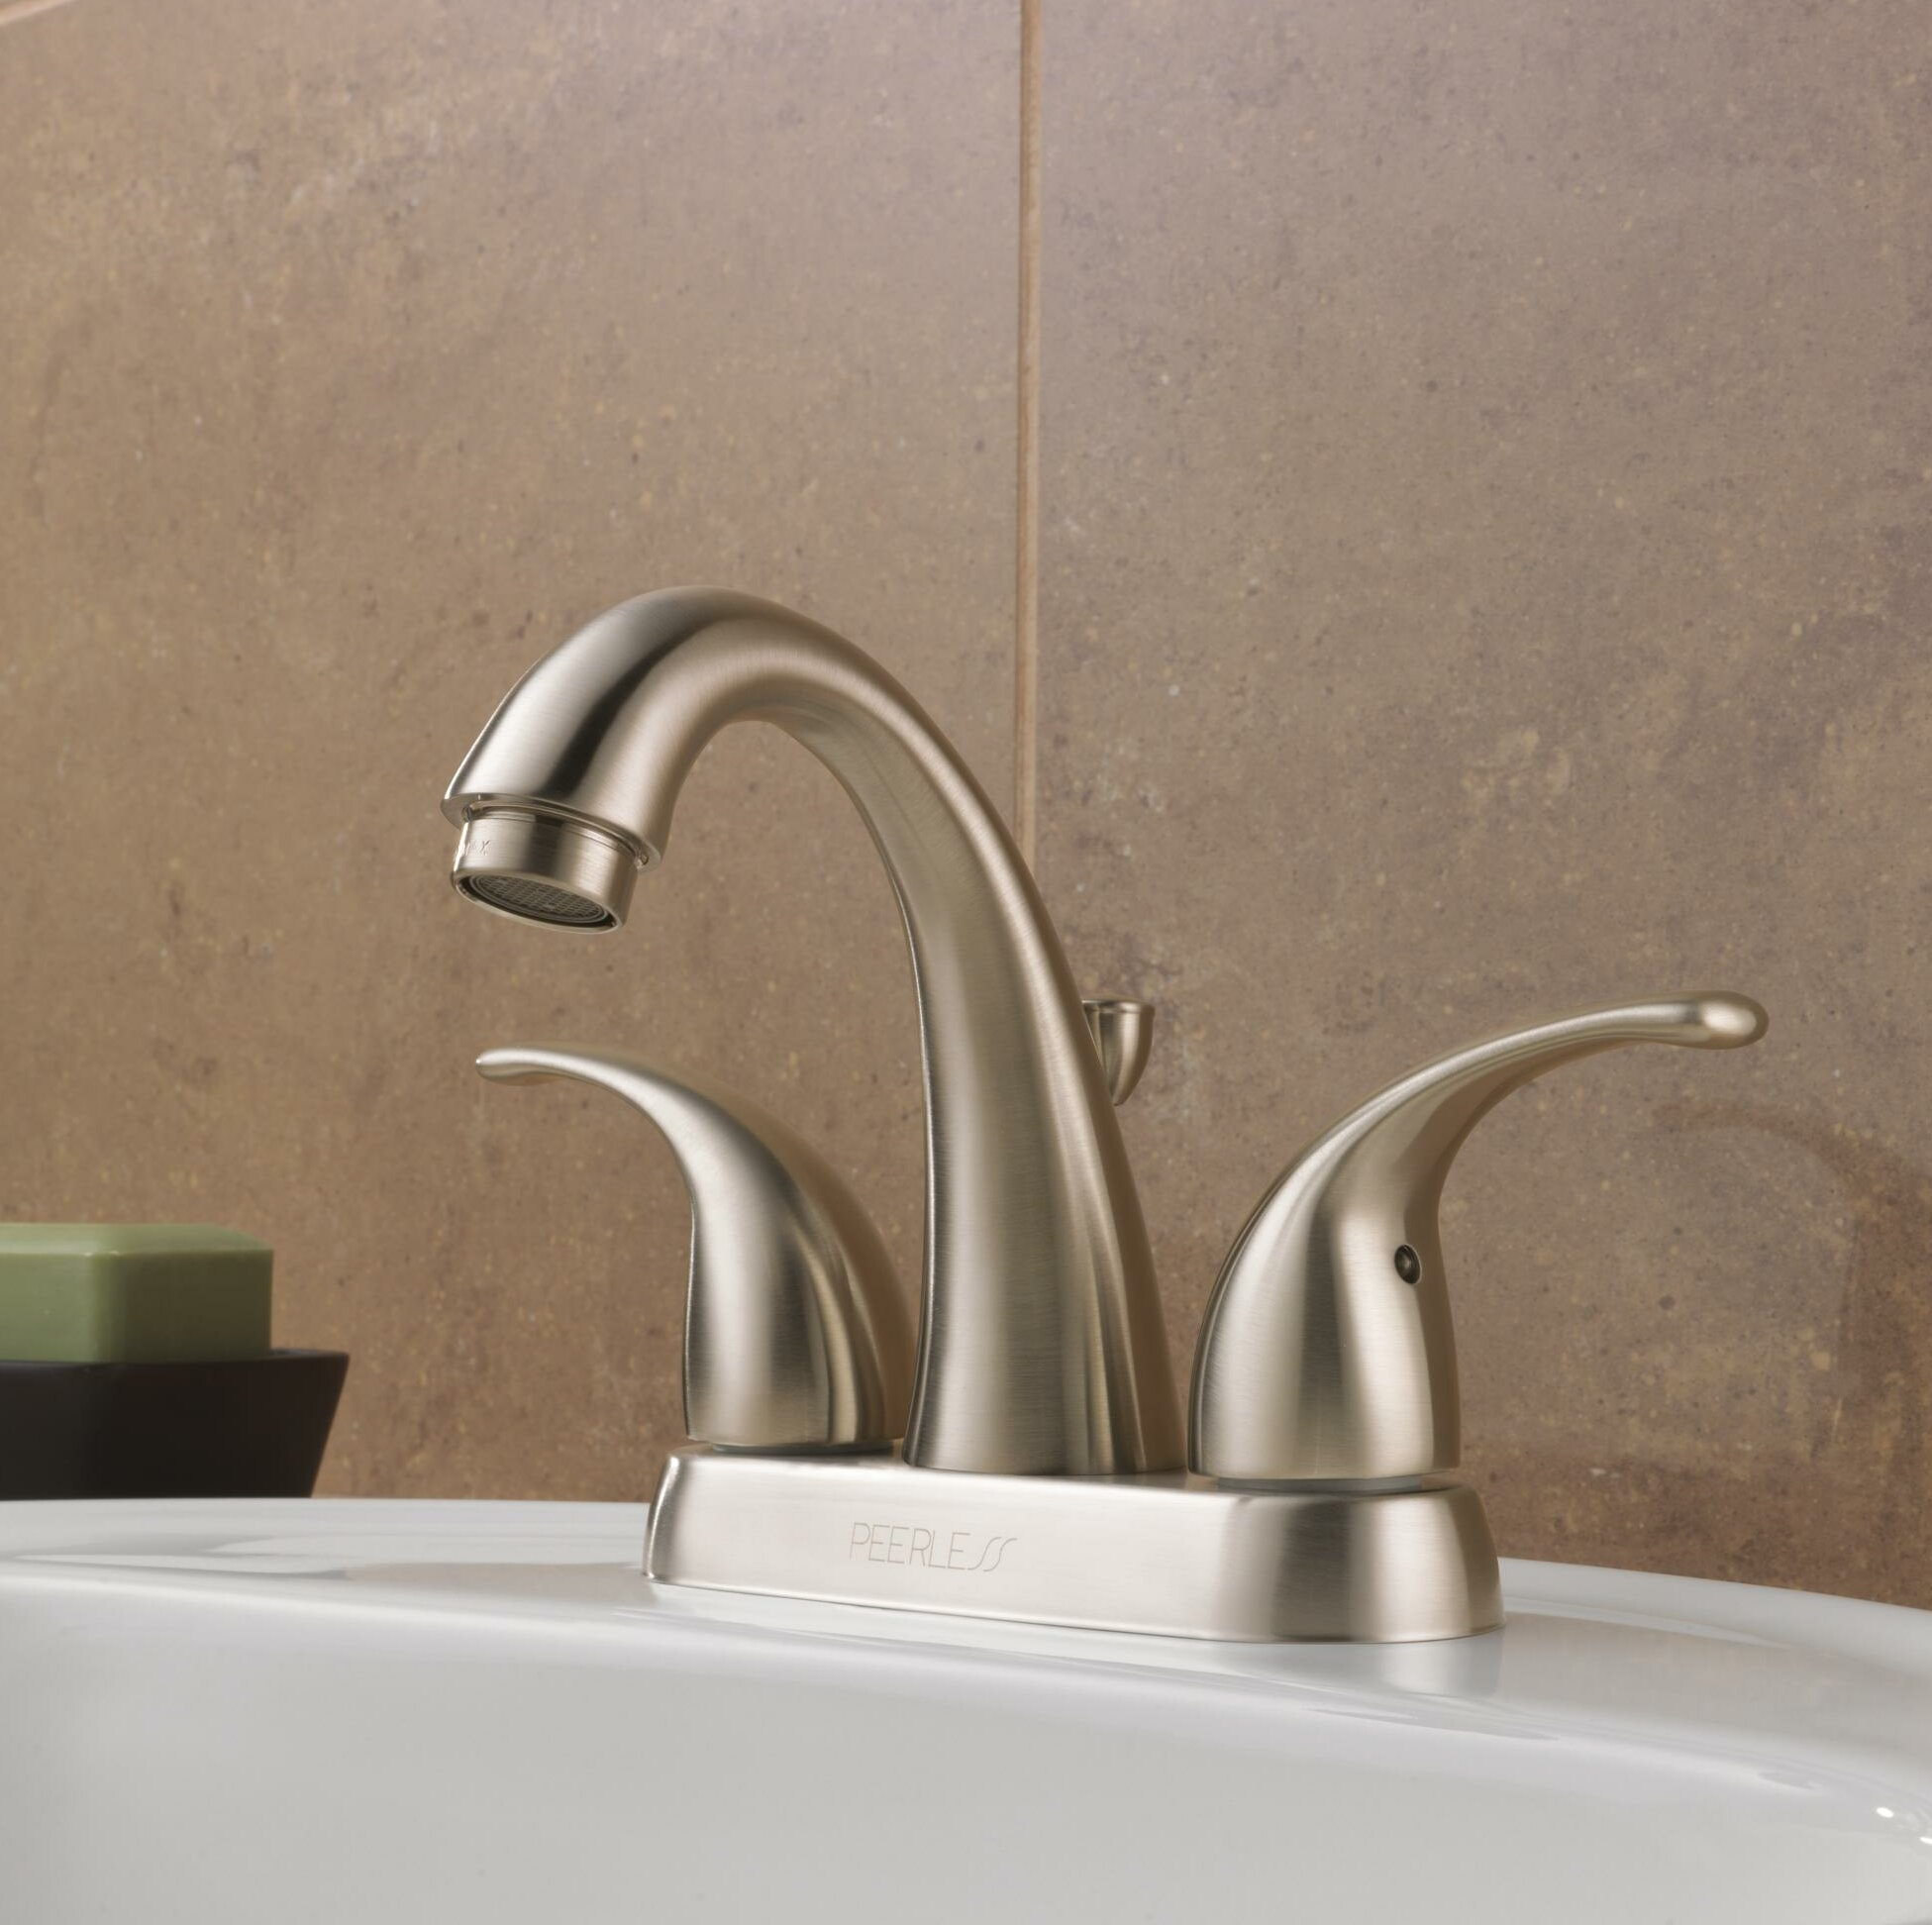 Centerset Bathroom Faucet with